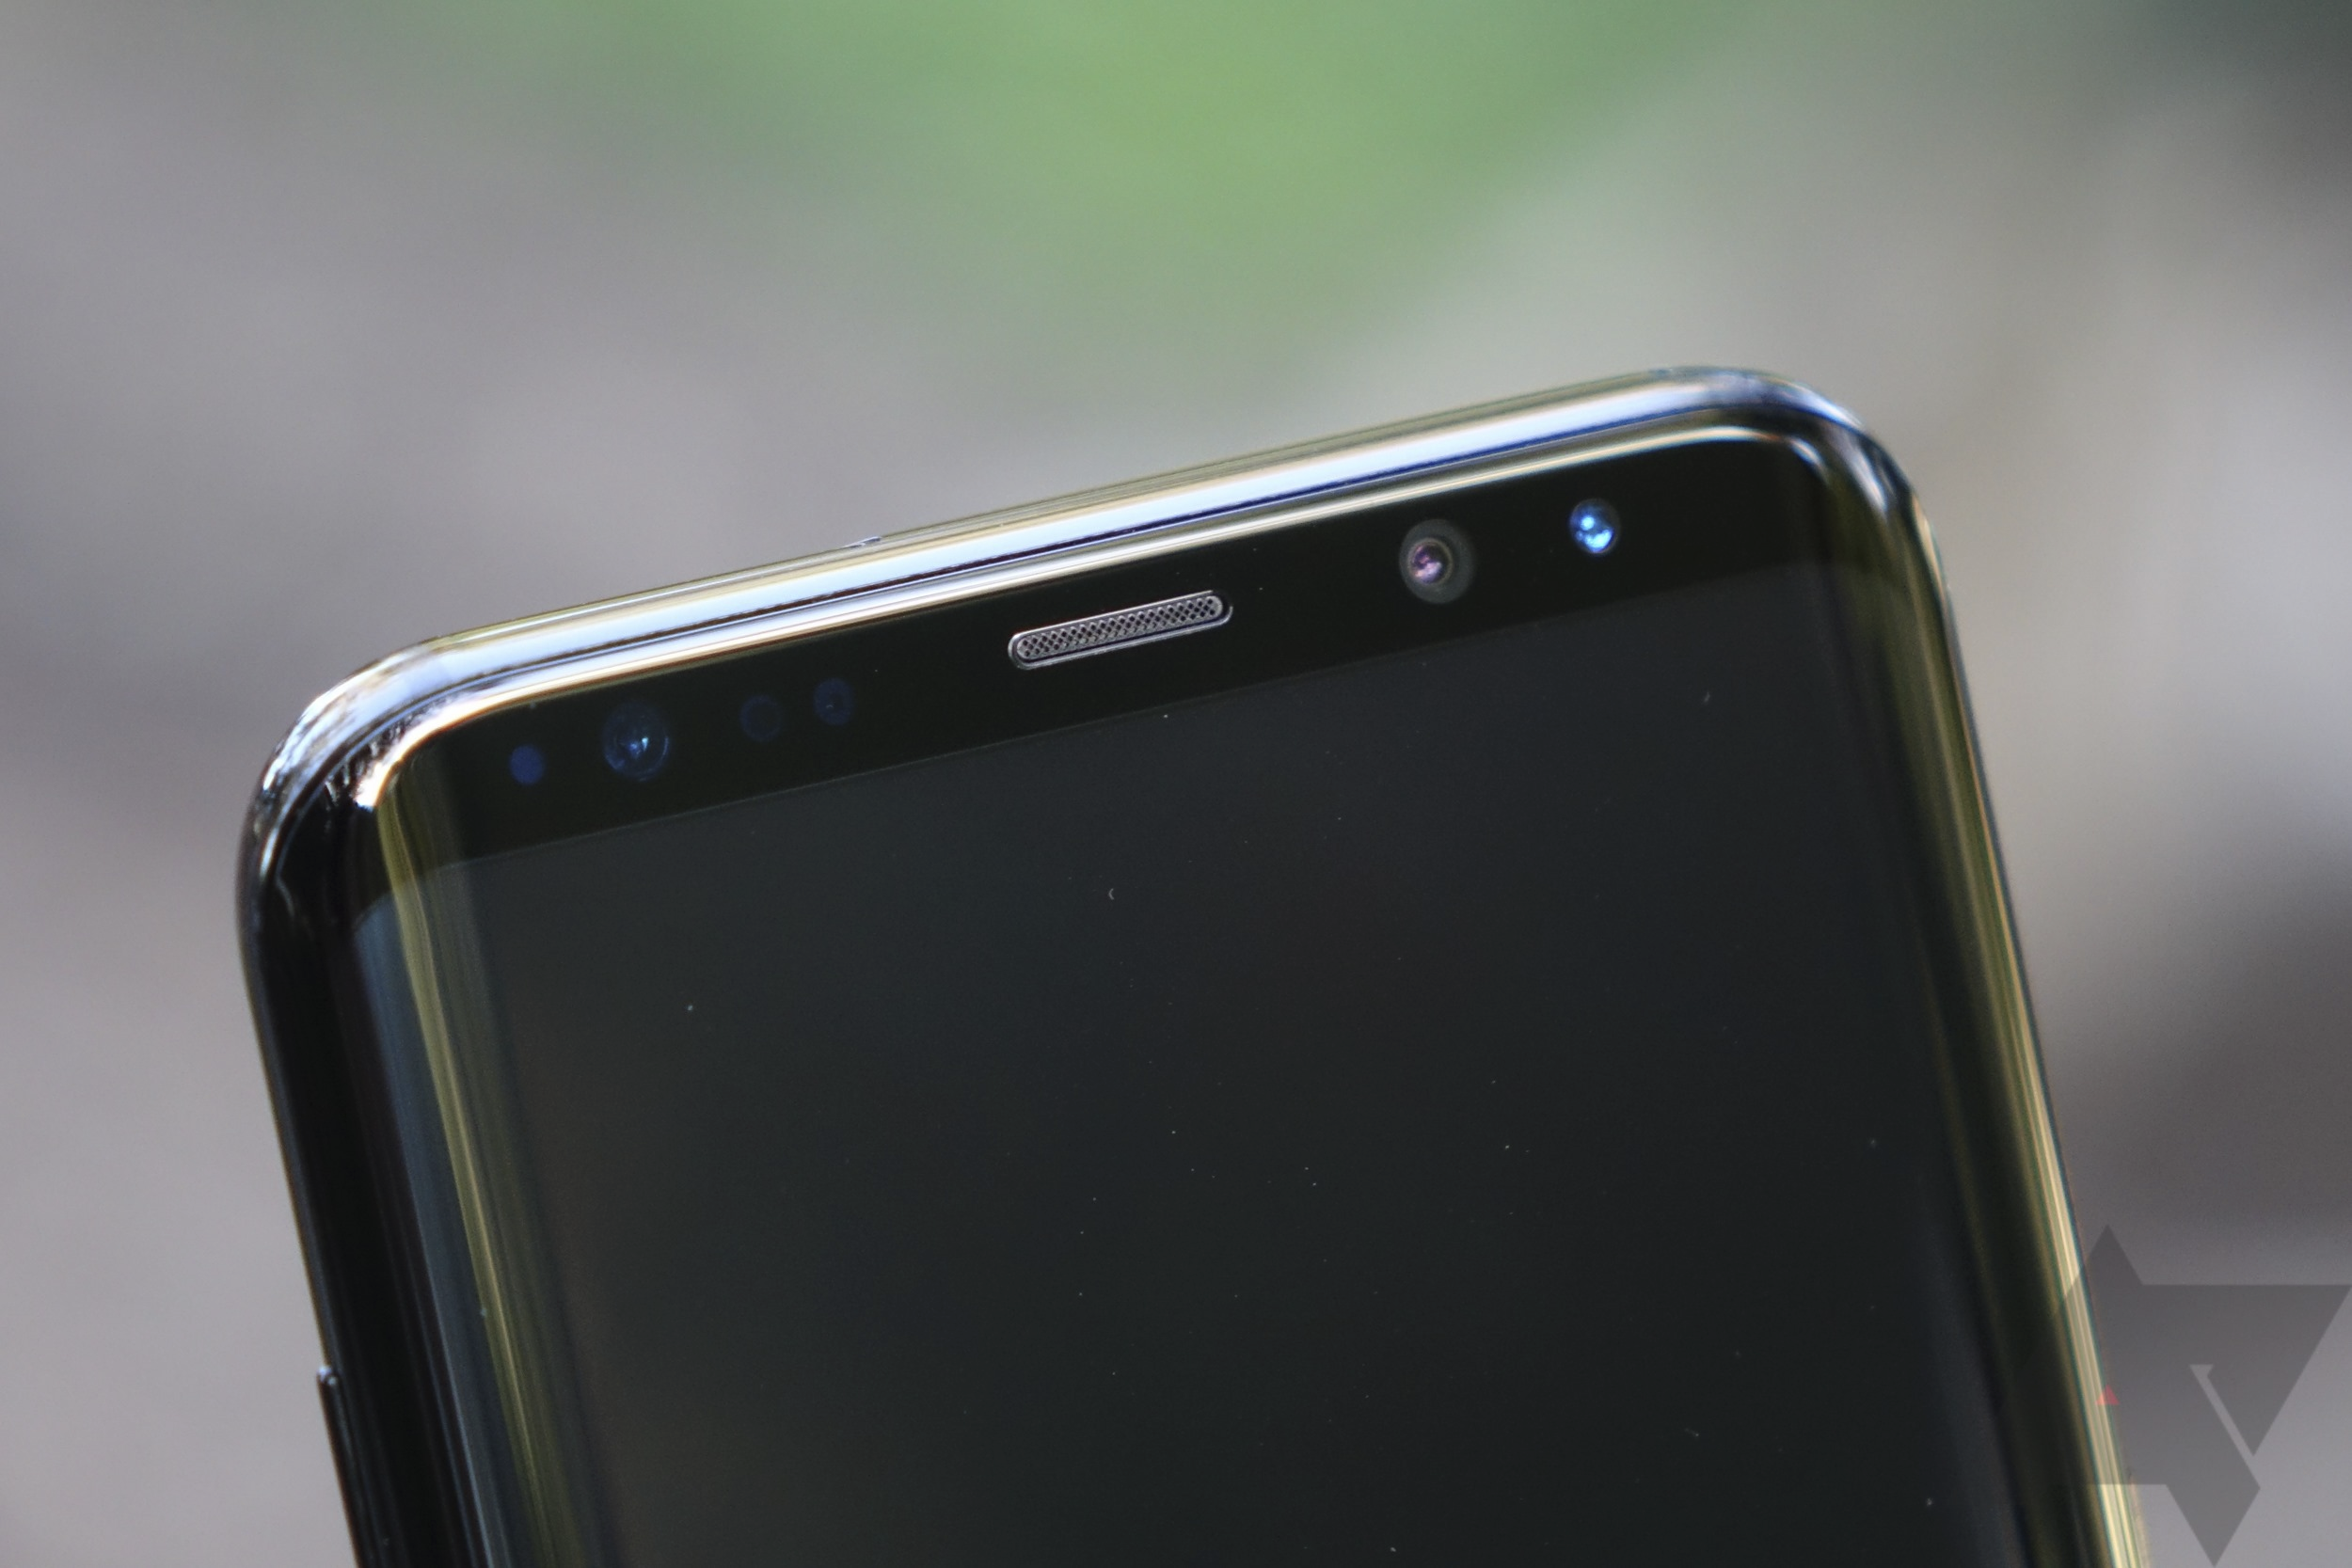 Sprint Galaxy S8 and S8+ get updates for Calling PLUS, a VoLTE-WiFi